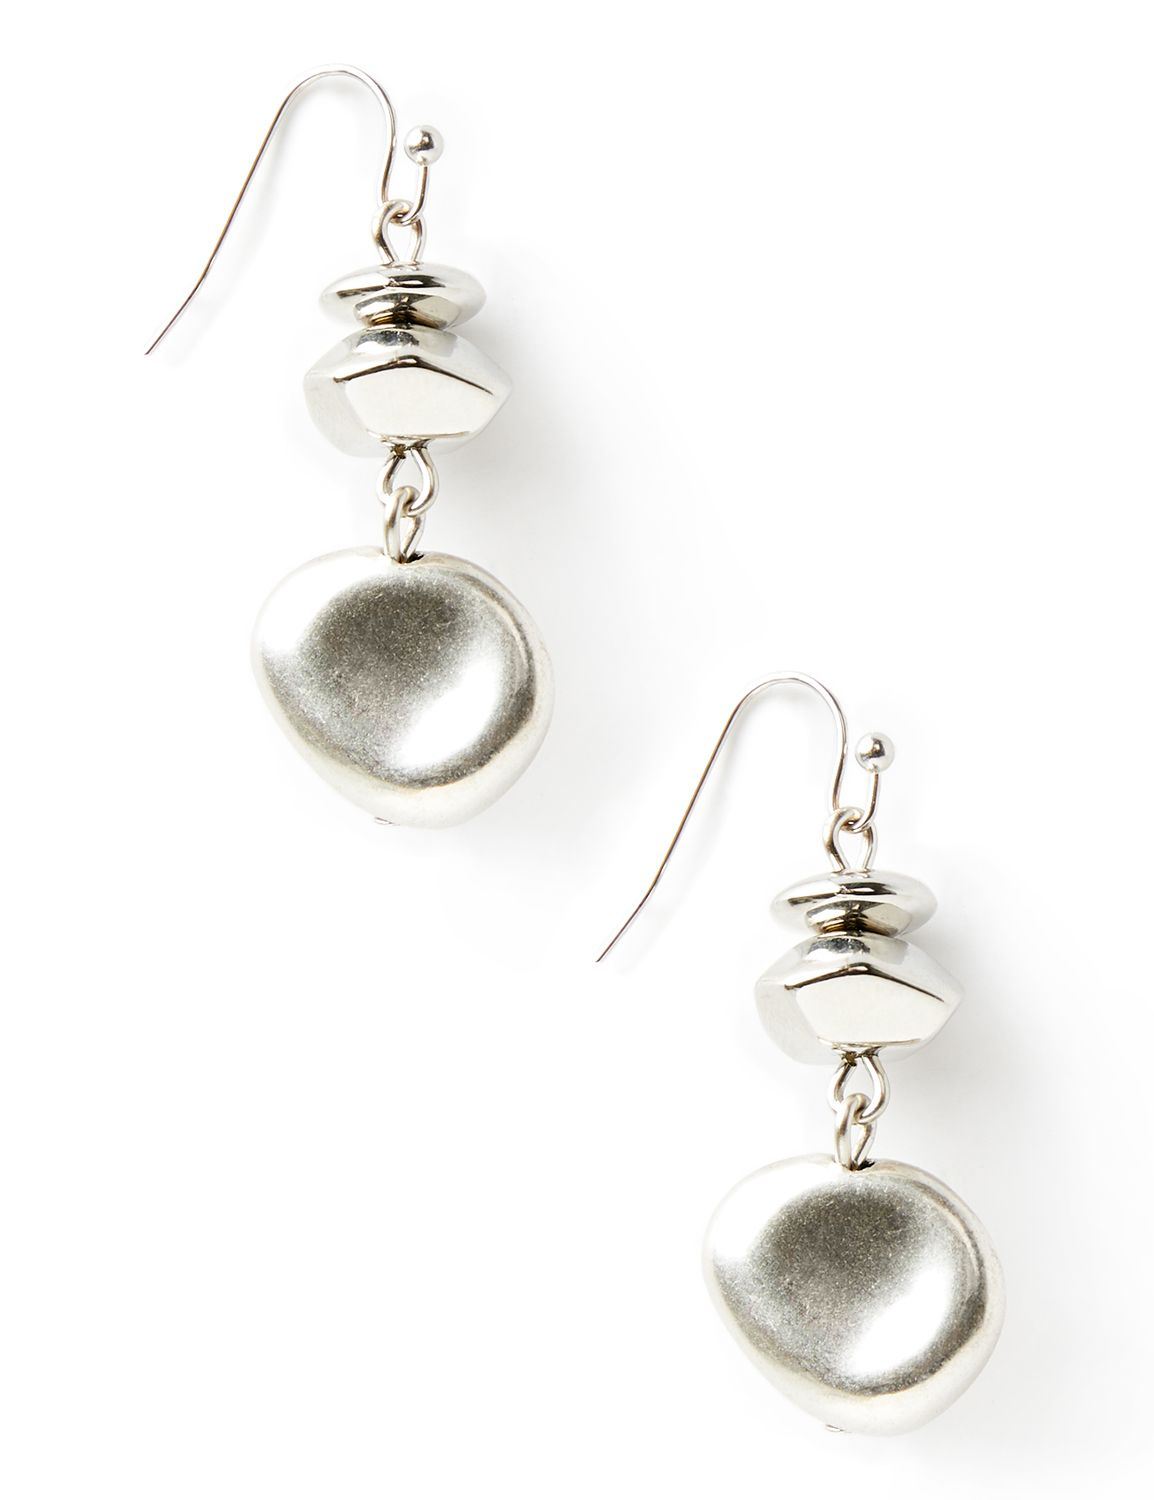 Infinity Drop Earrings NHF drop matte silv bead PE 8/18A MP-300097186